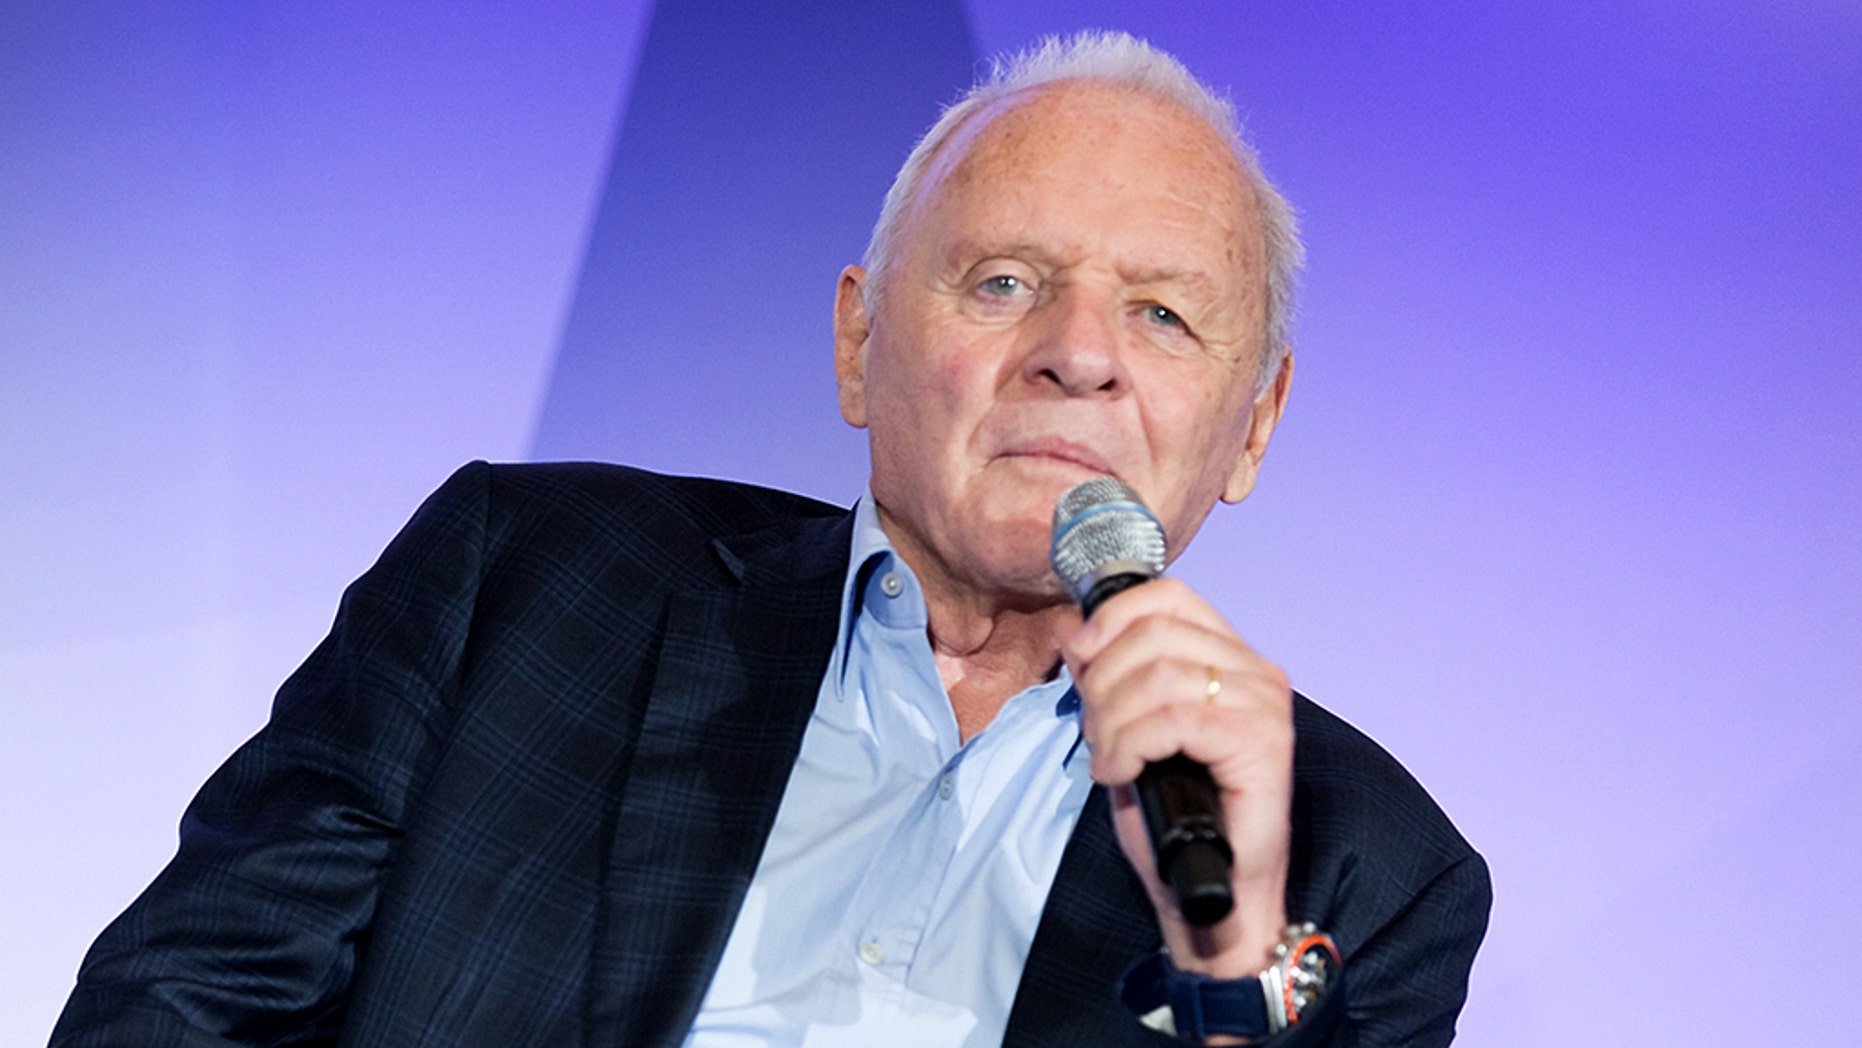 Sir Anthony Hopkins opened up about his battle with alcoholism and how he was difficult to work with when he was hungover.